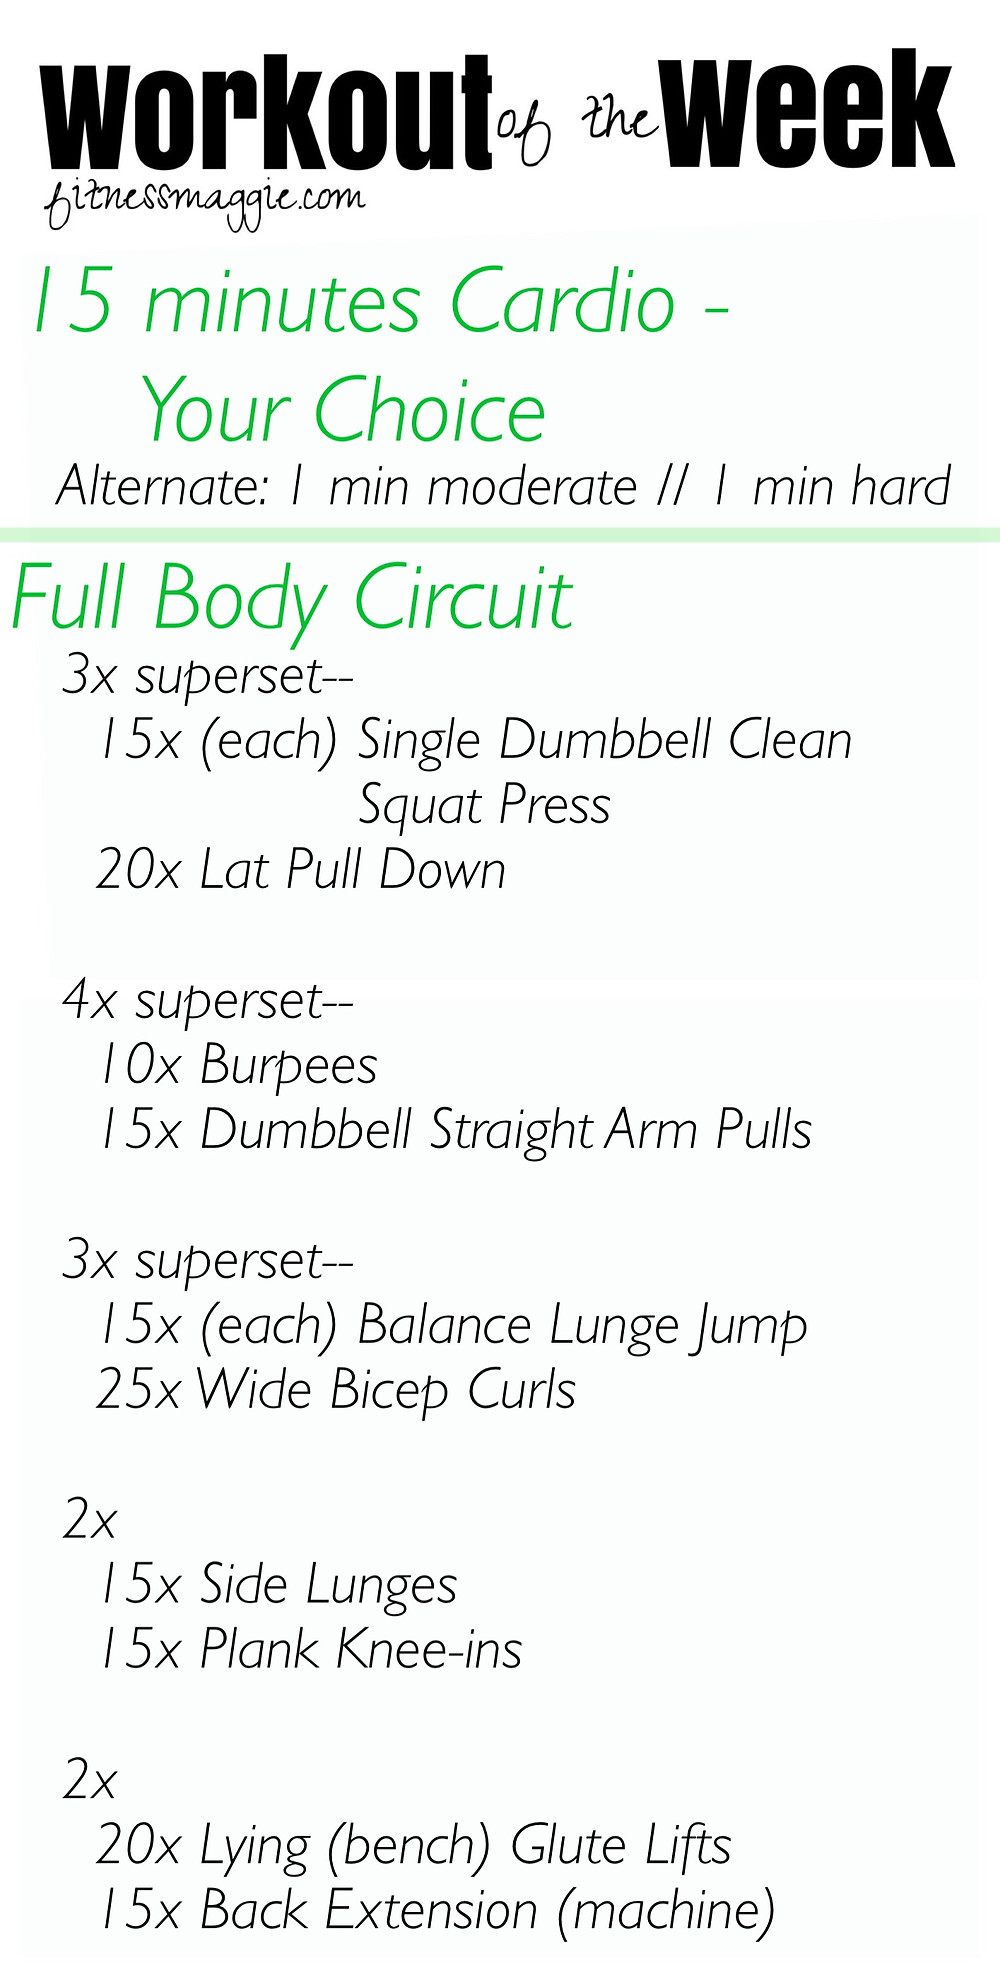 full body workout of the week